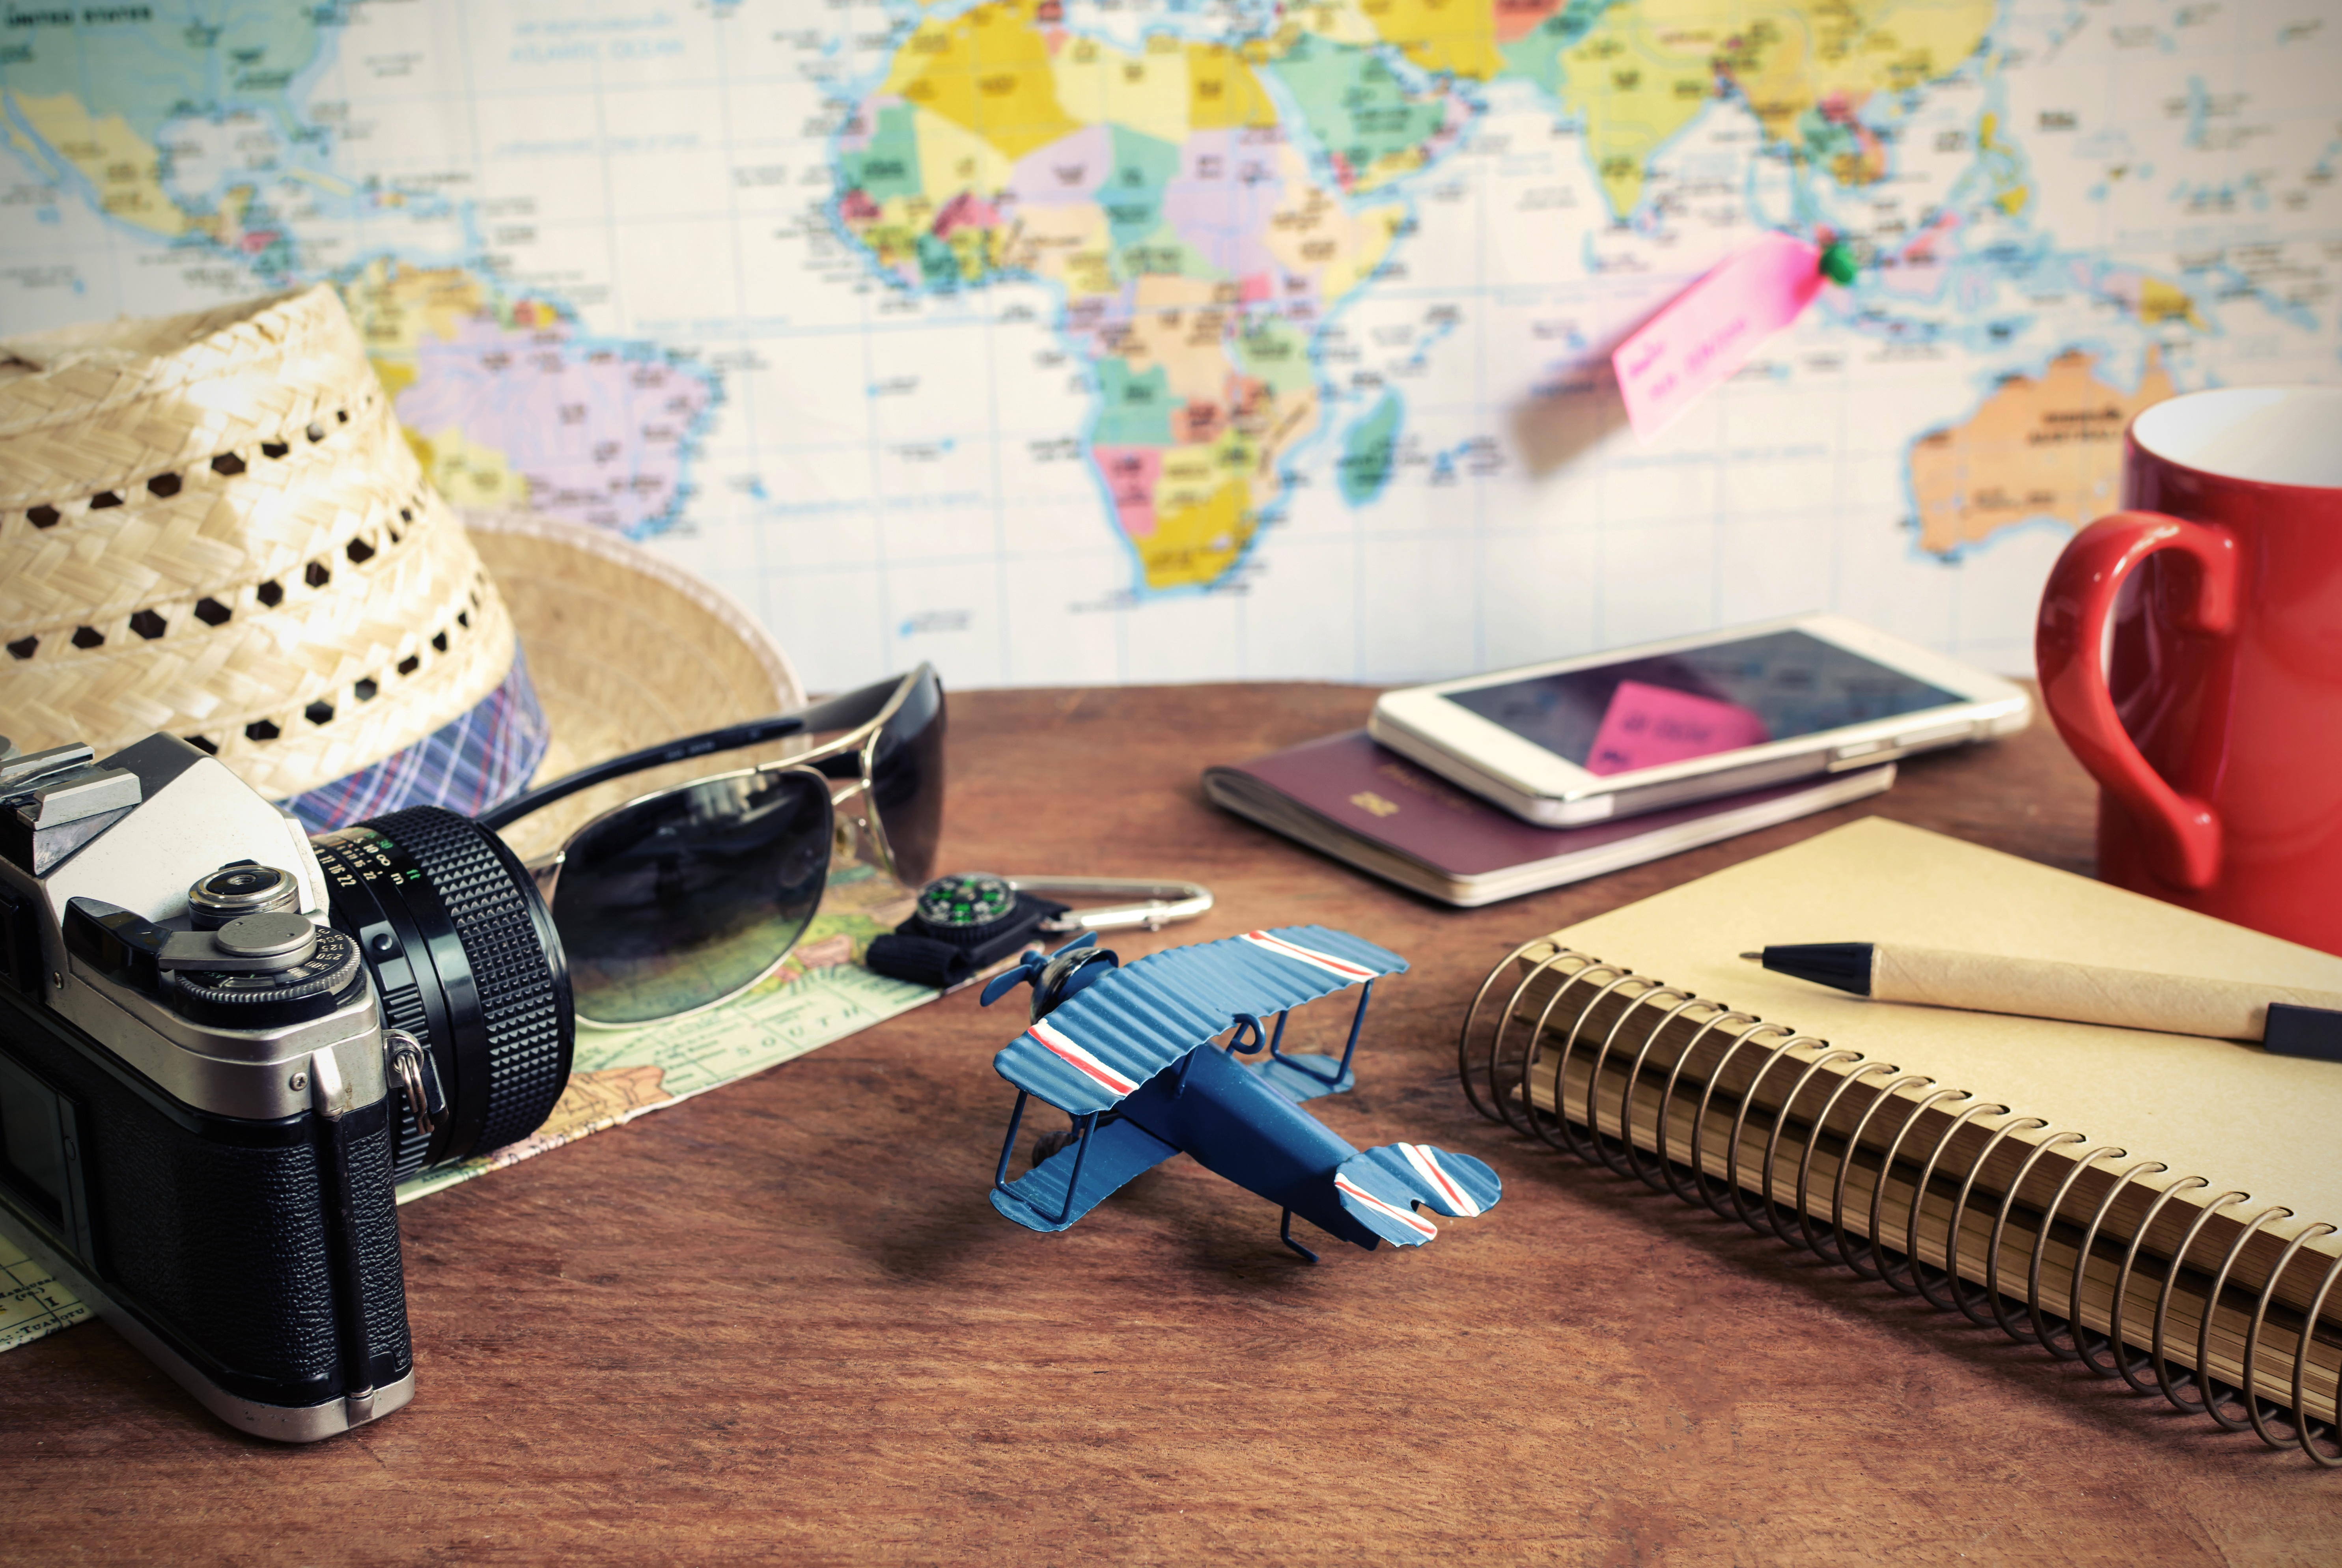 Why Employees Should Use Their Vacation Days